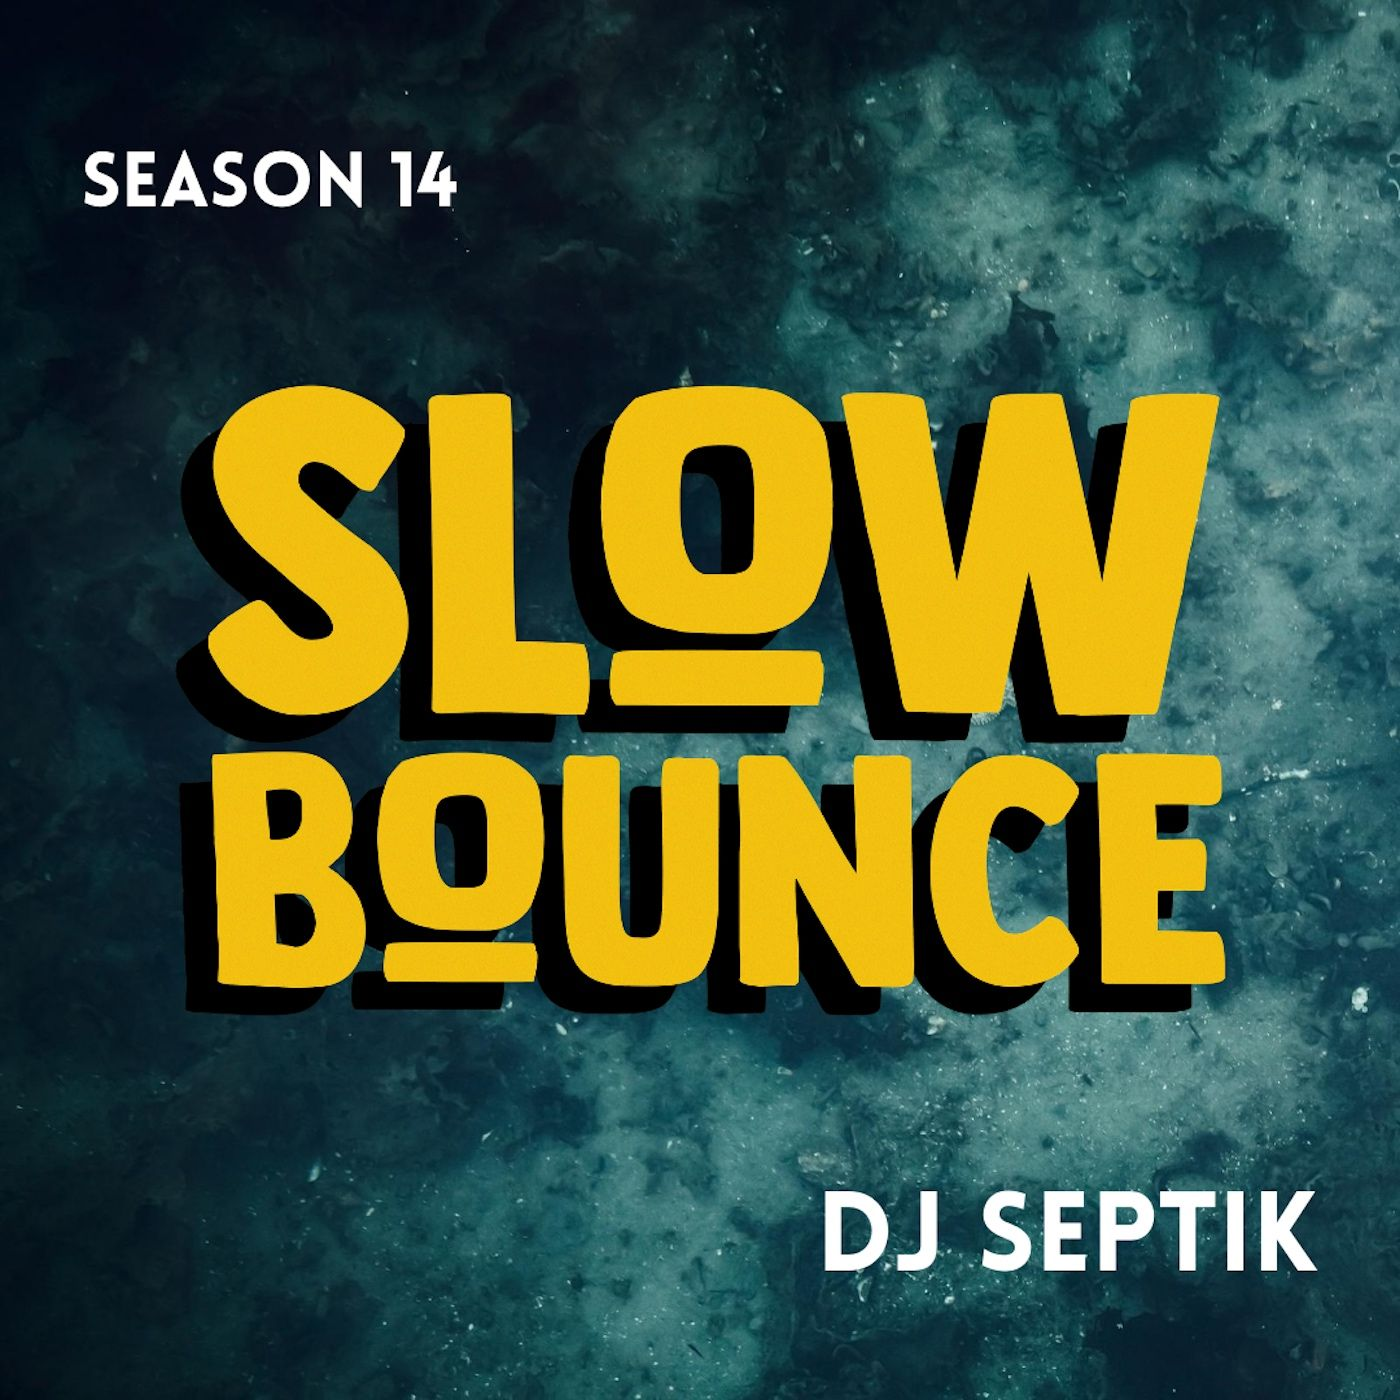 Bigupradio.com SLOWBOUNCE - Dancehall & Tropical Bass